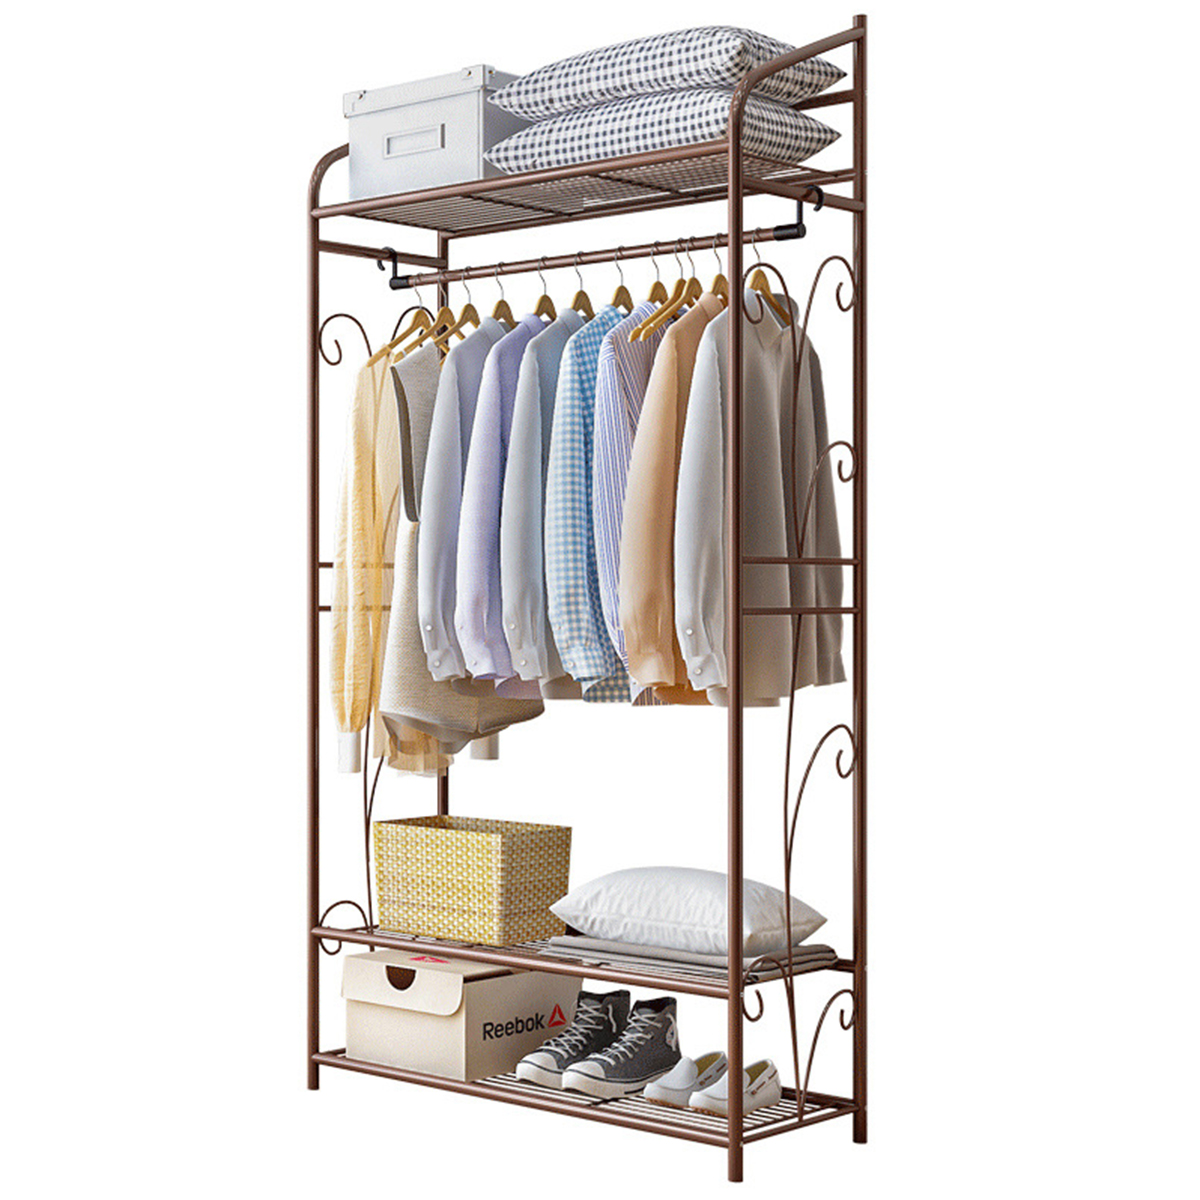 4 tiers stainless steel coat rack shoes rack multifunctional bookshelf clothing hanging rack garment clothes shelf home office furniture